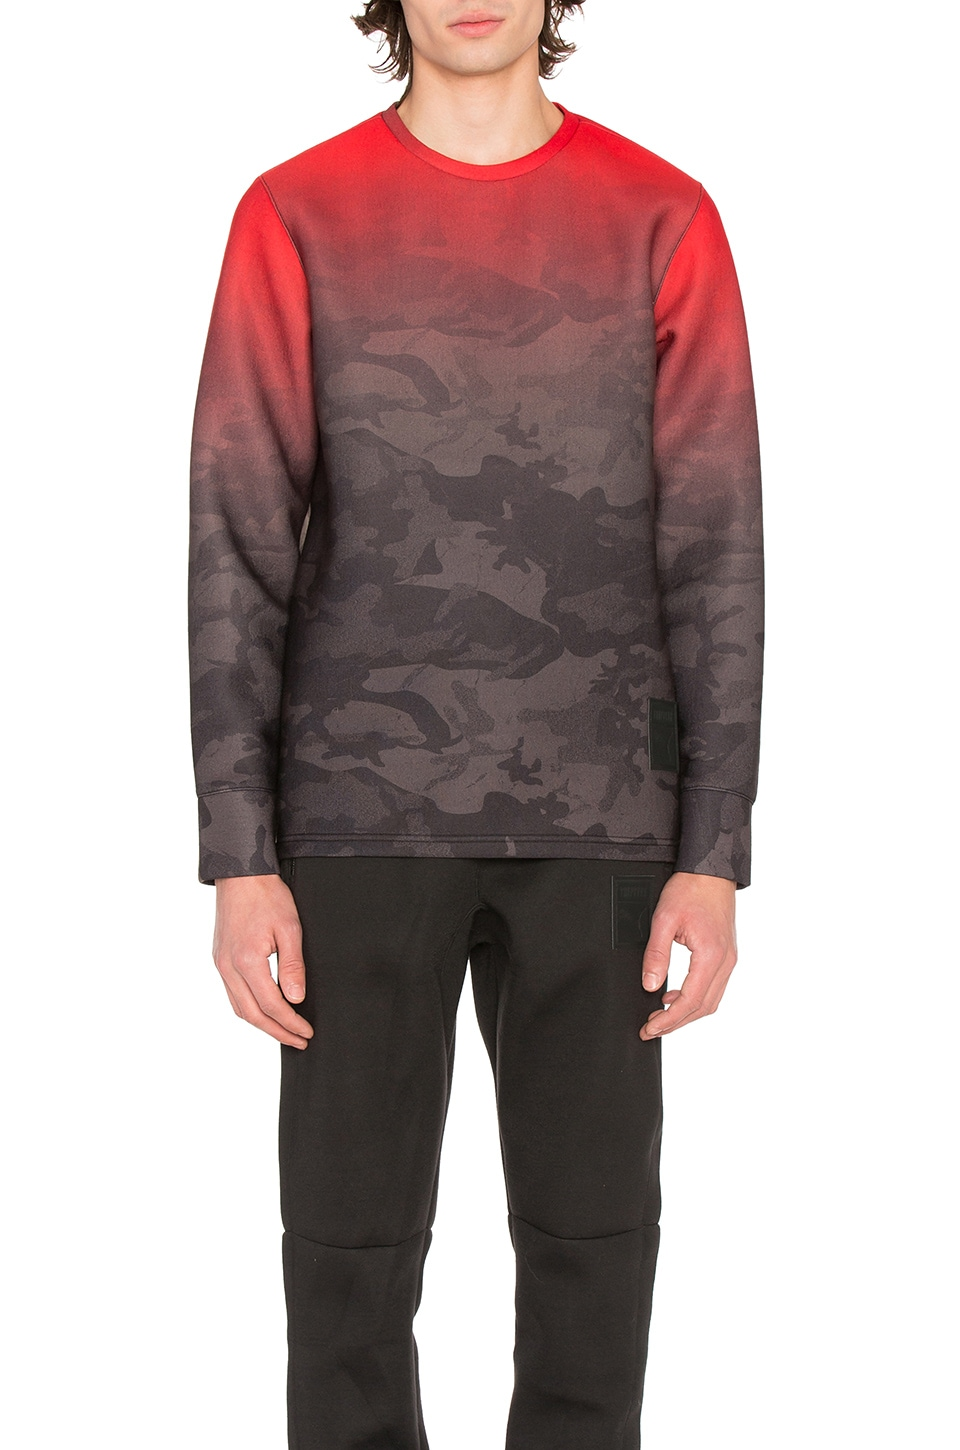 Photo of x Trapstar Crew Sweat by Puma Select men clothes